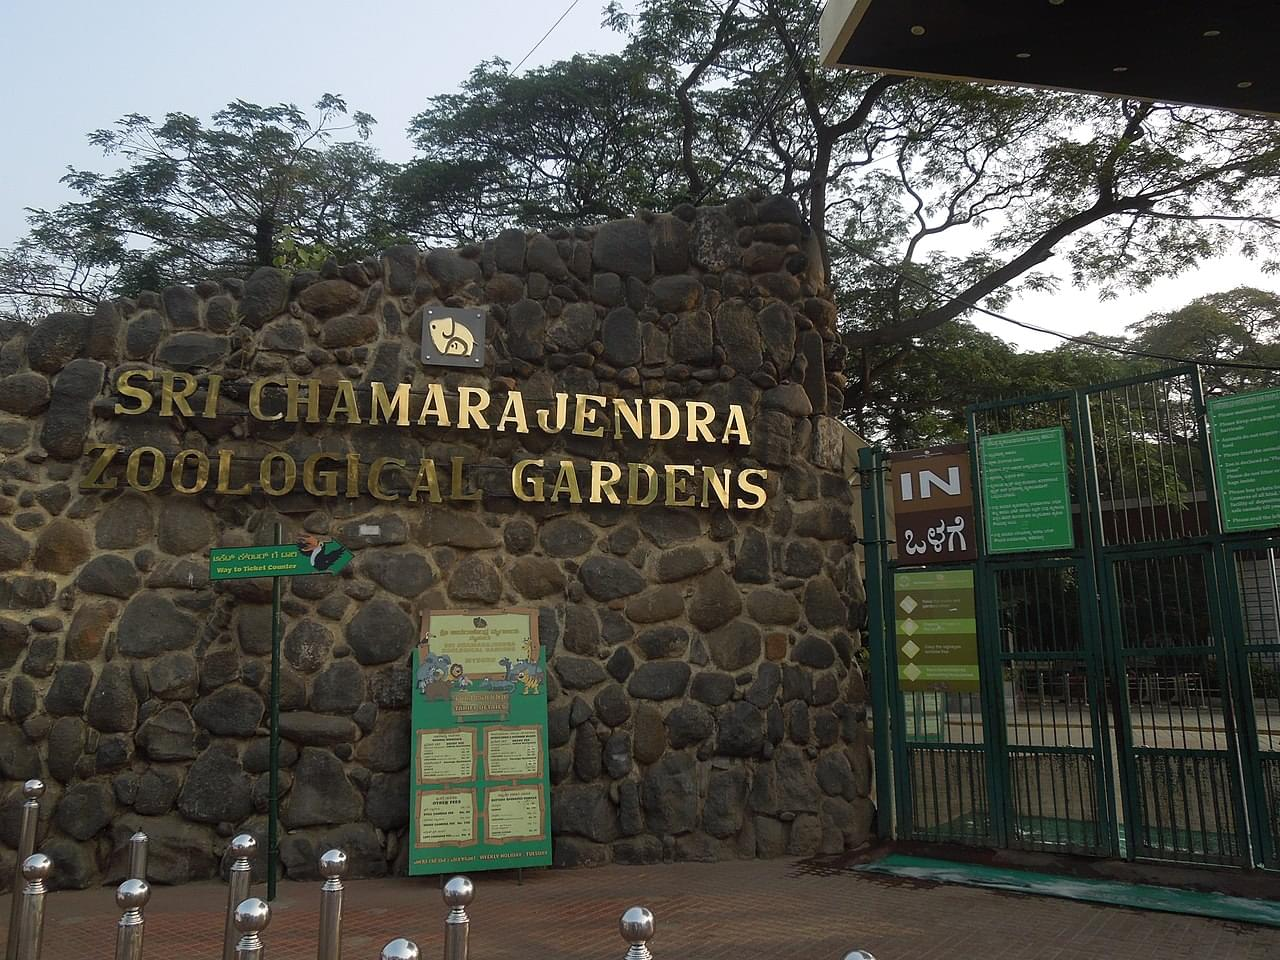 6-Nights-7-Days-Chikmagalur,-Coorg-and-Mysore-Tour-Package-JustWravel-1597395239-6.jpg